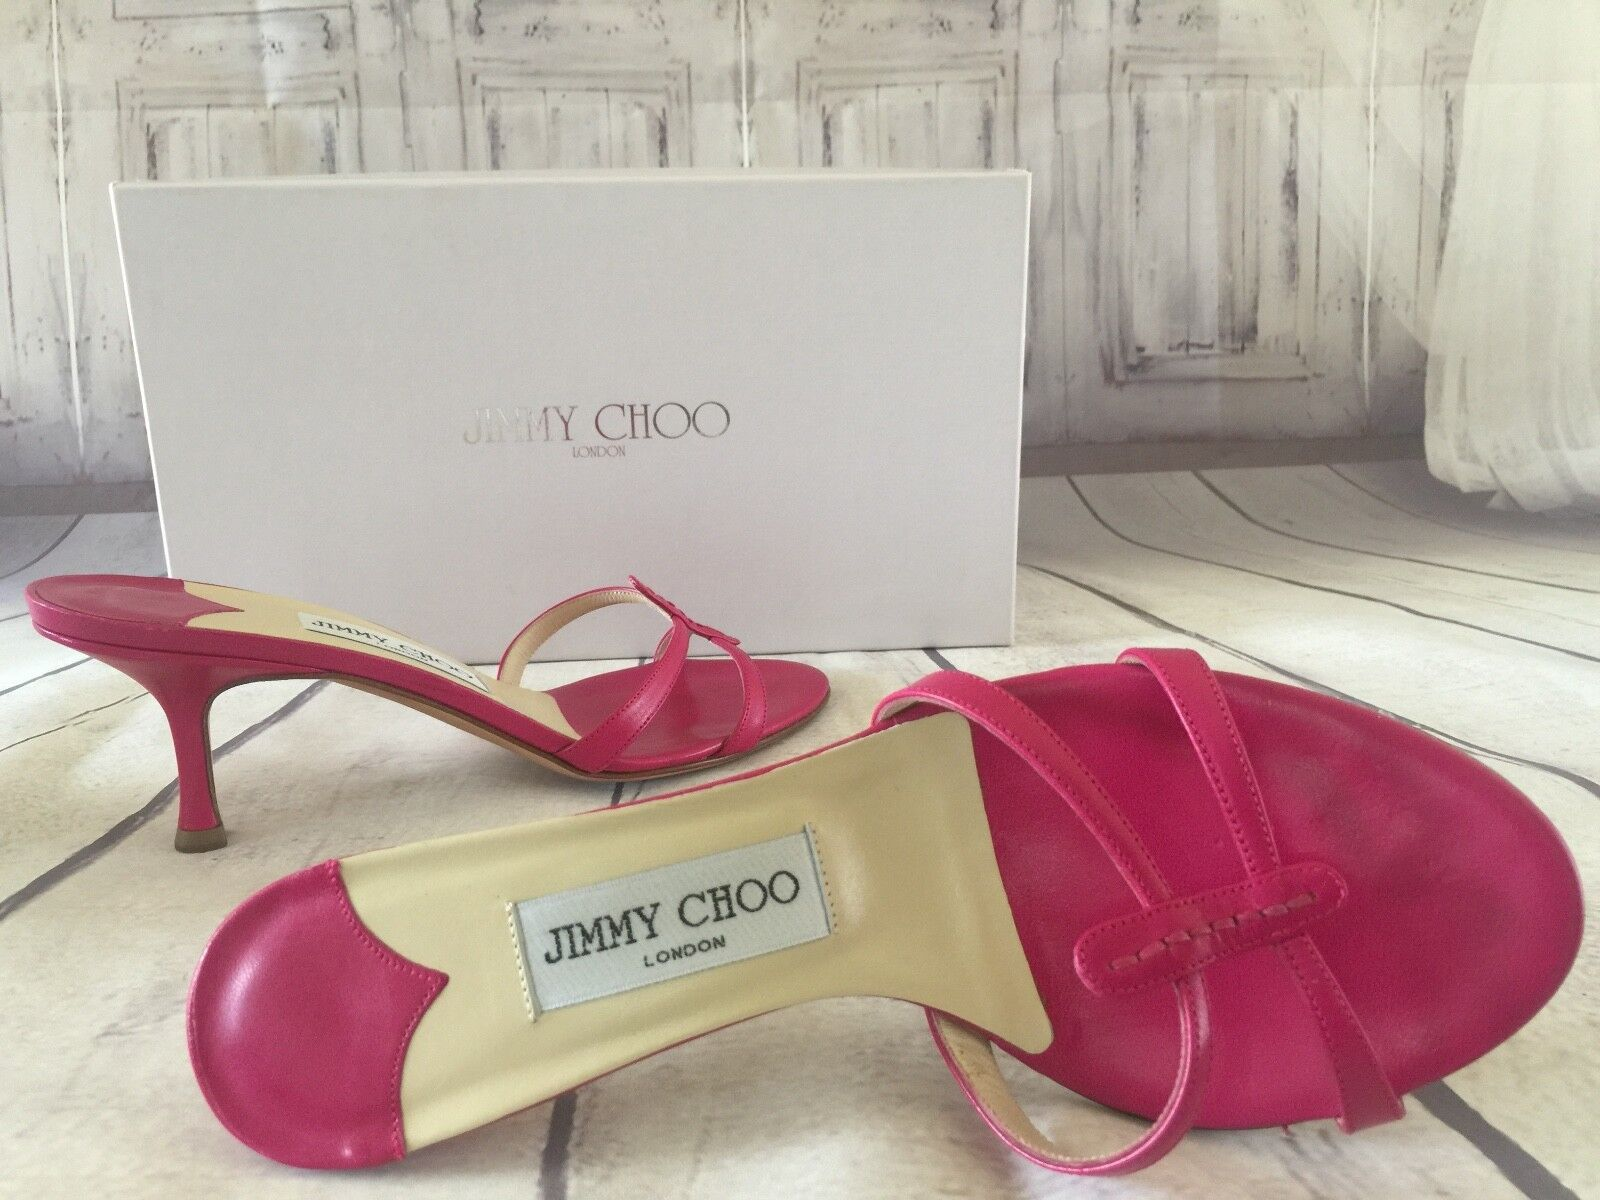 Jimmy CHOO womens Shoes PINK sexy Stilleto HEELS flip flop sandals BOX size 6 US